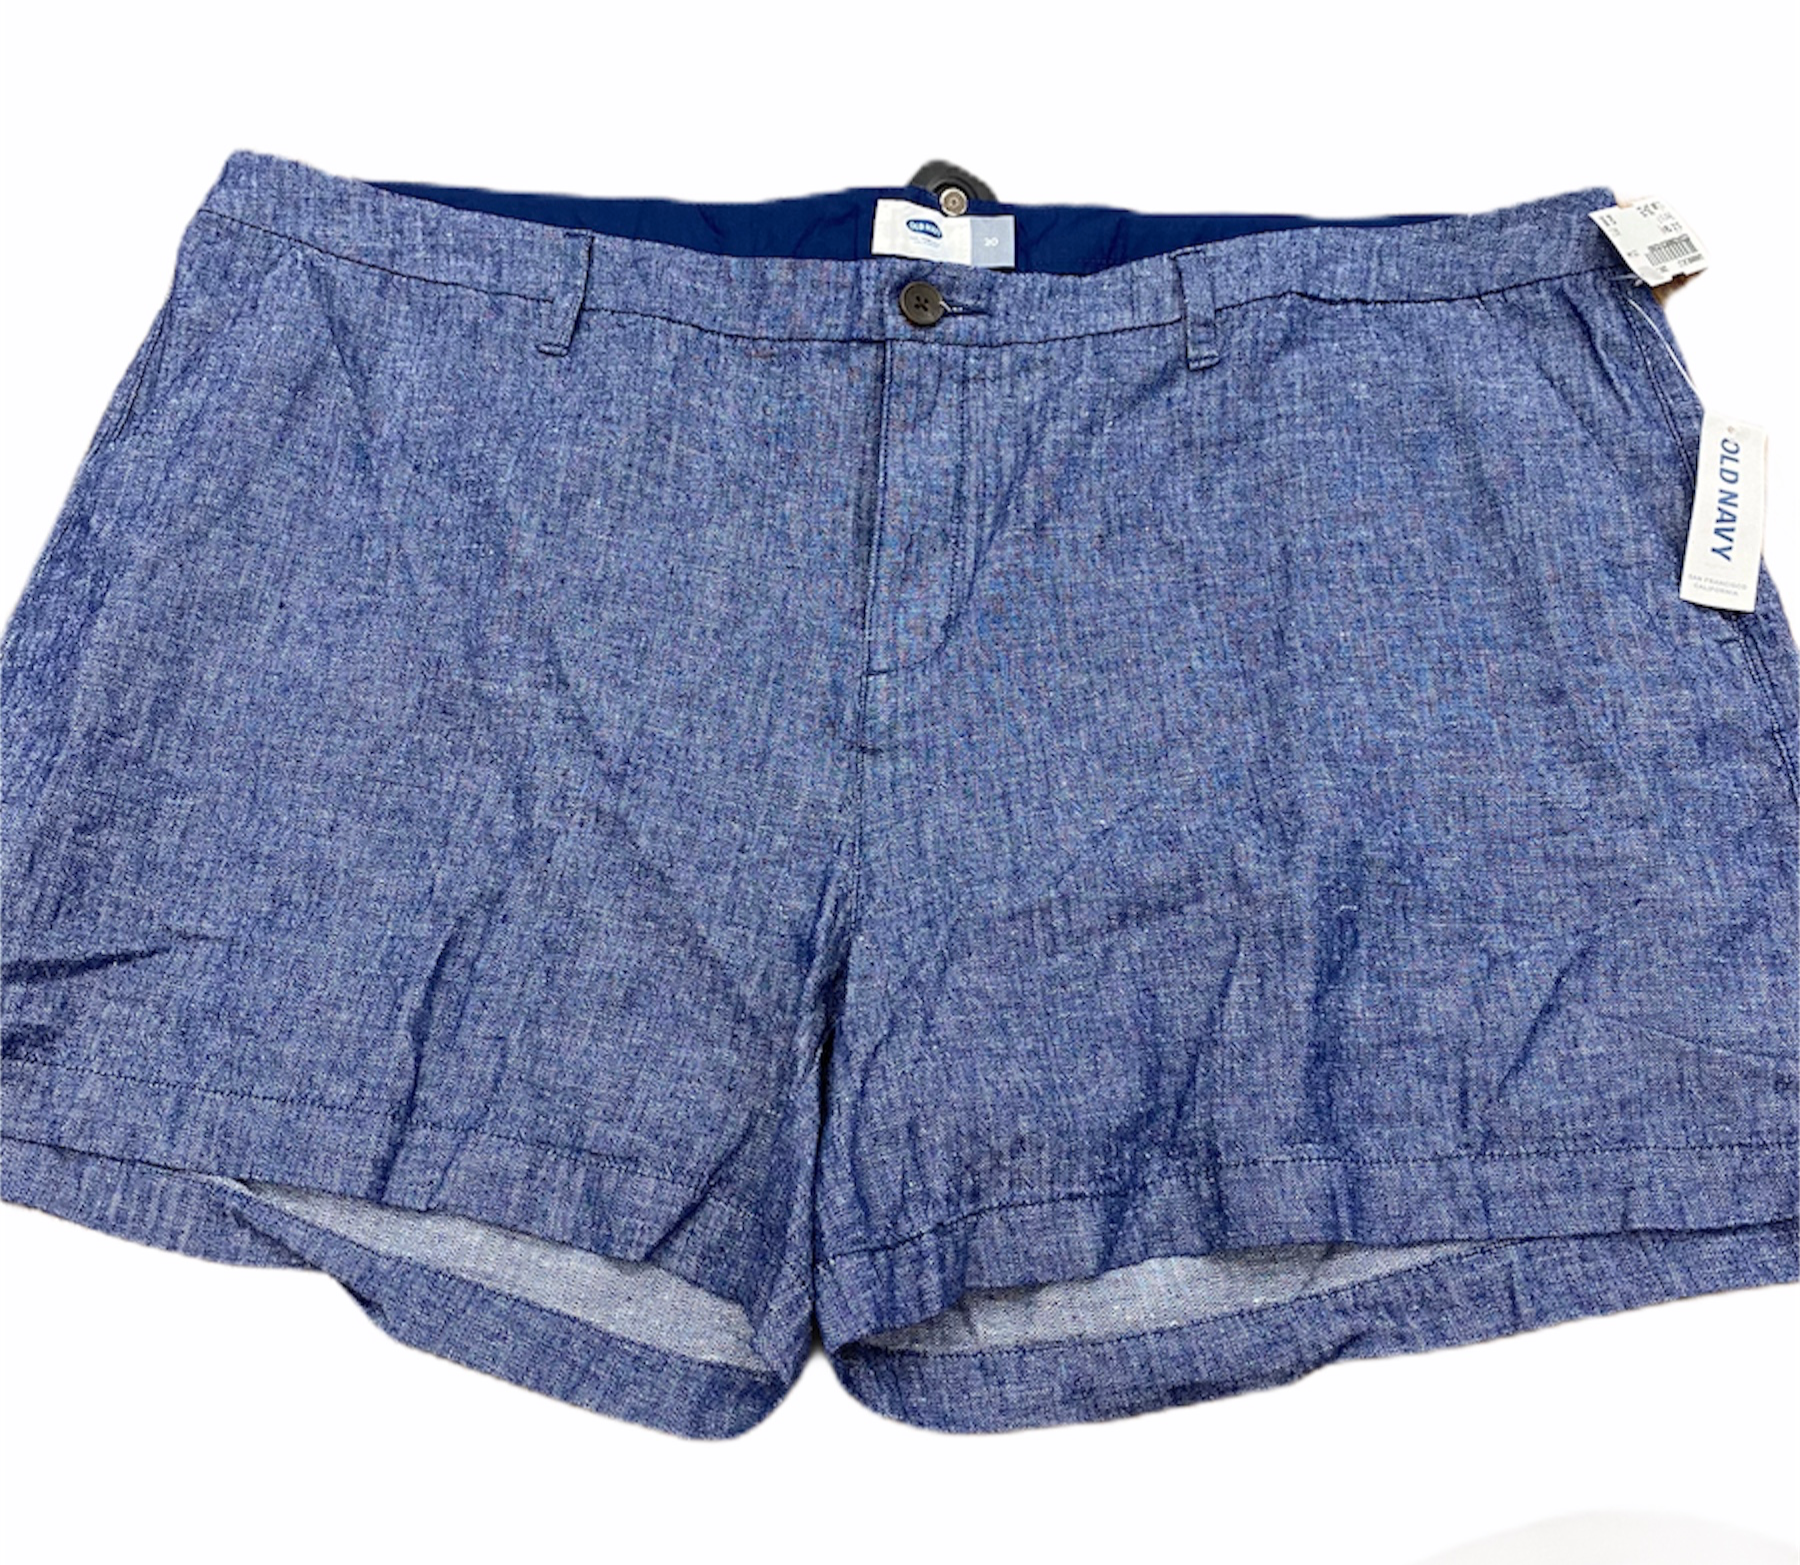 Old Navy Shorts Size 20 (35)